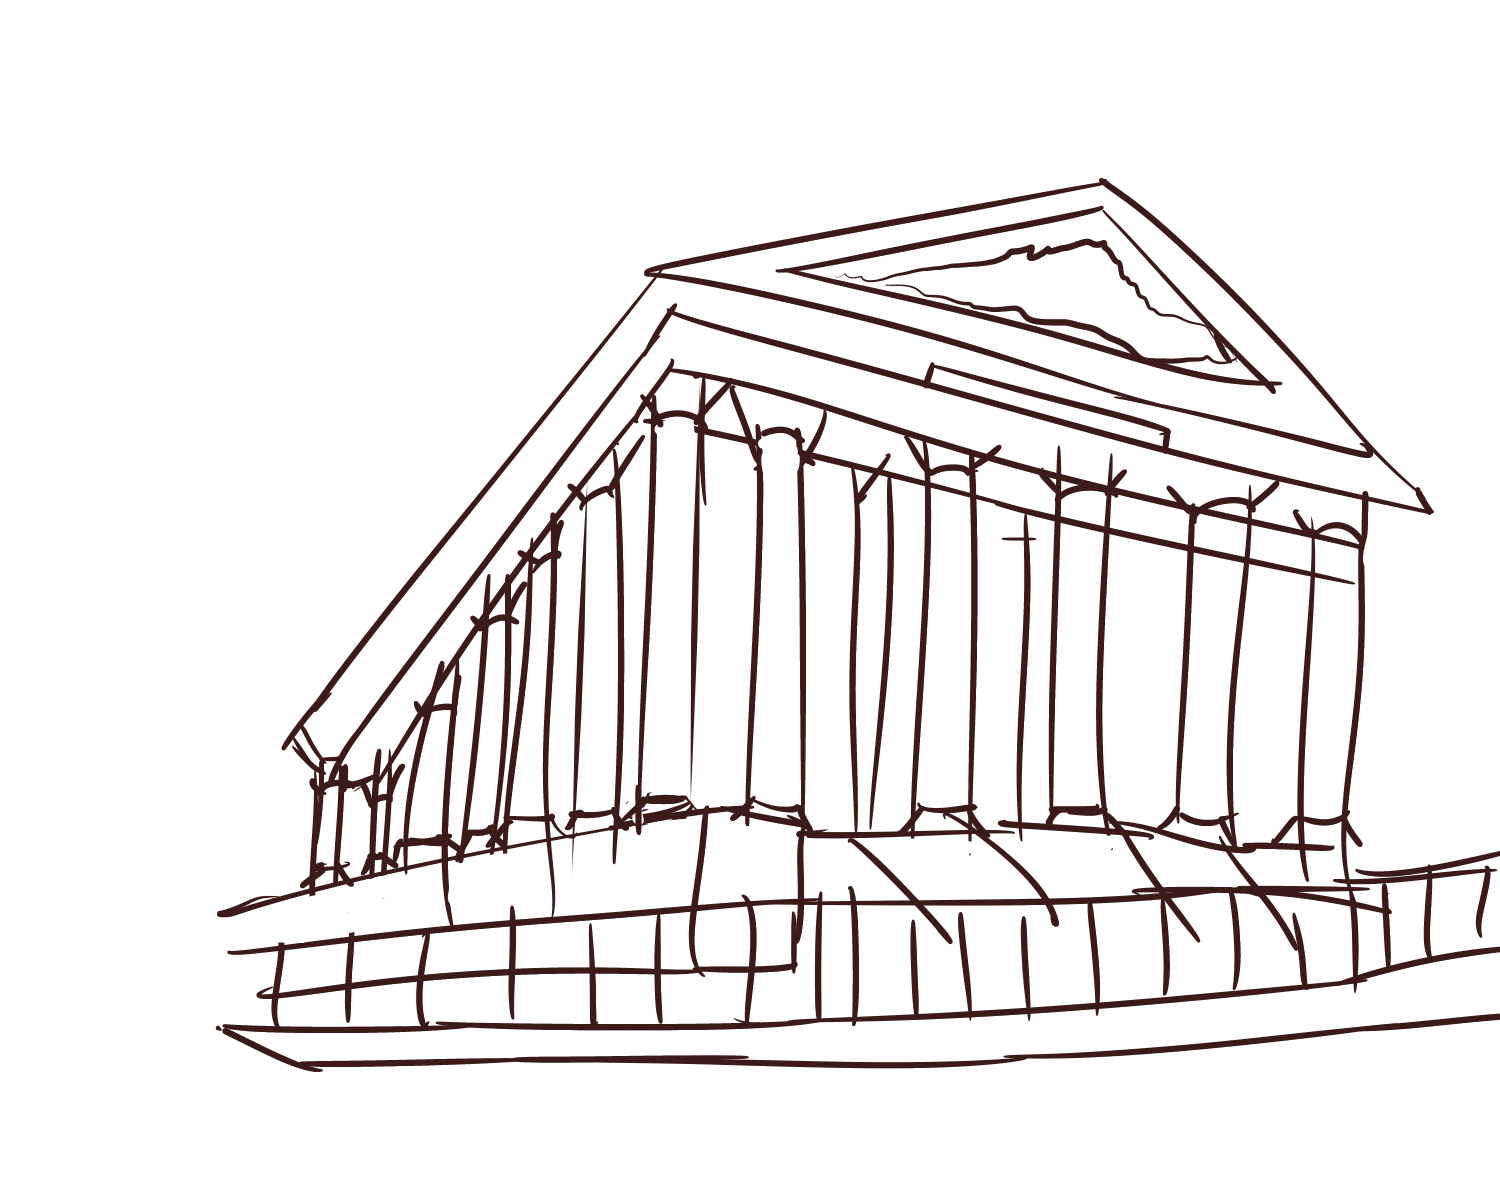 Pillars drawing architecture. July th neoclassical sketchdaily